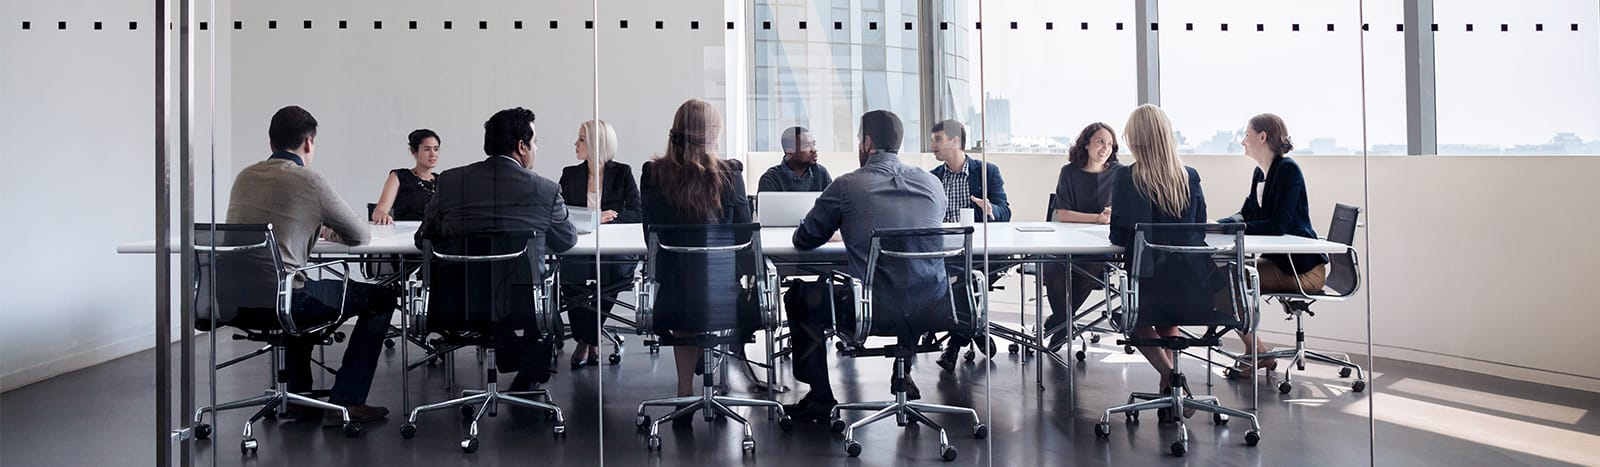 Group of people around a conference table